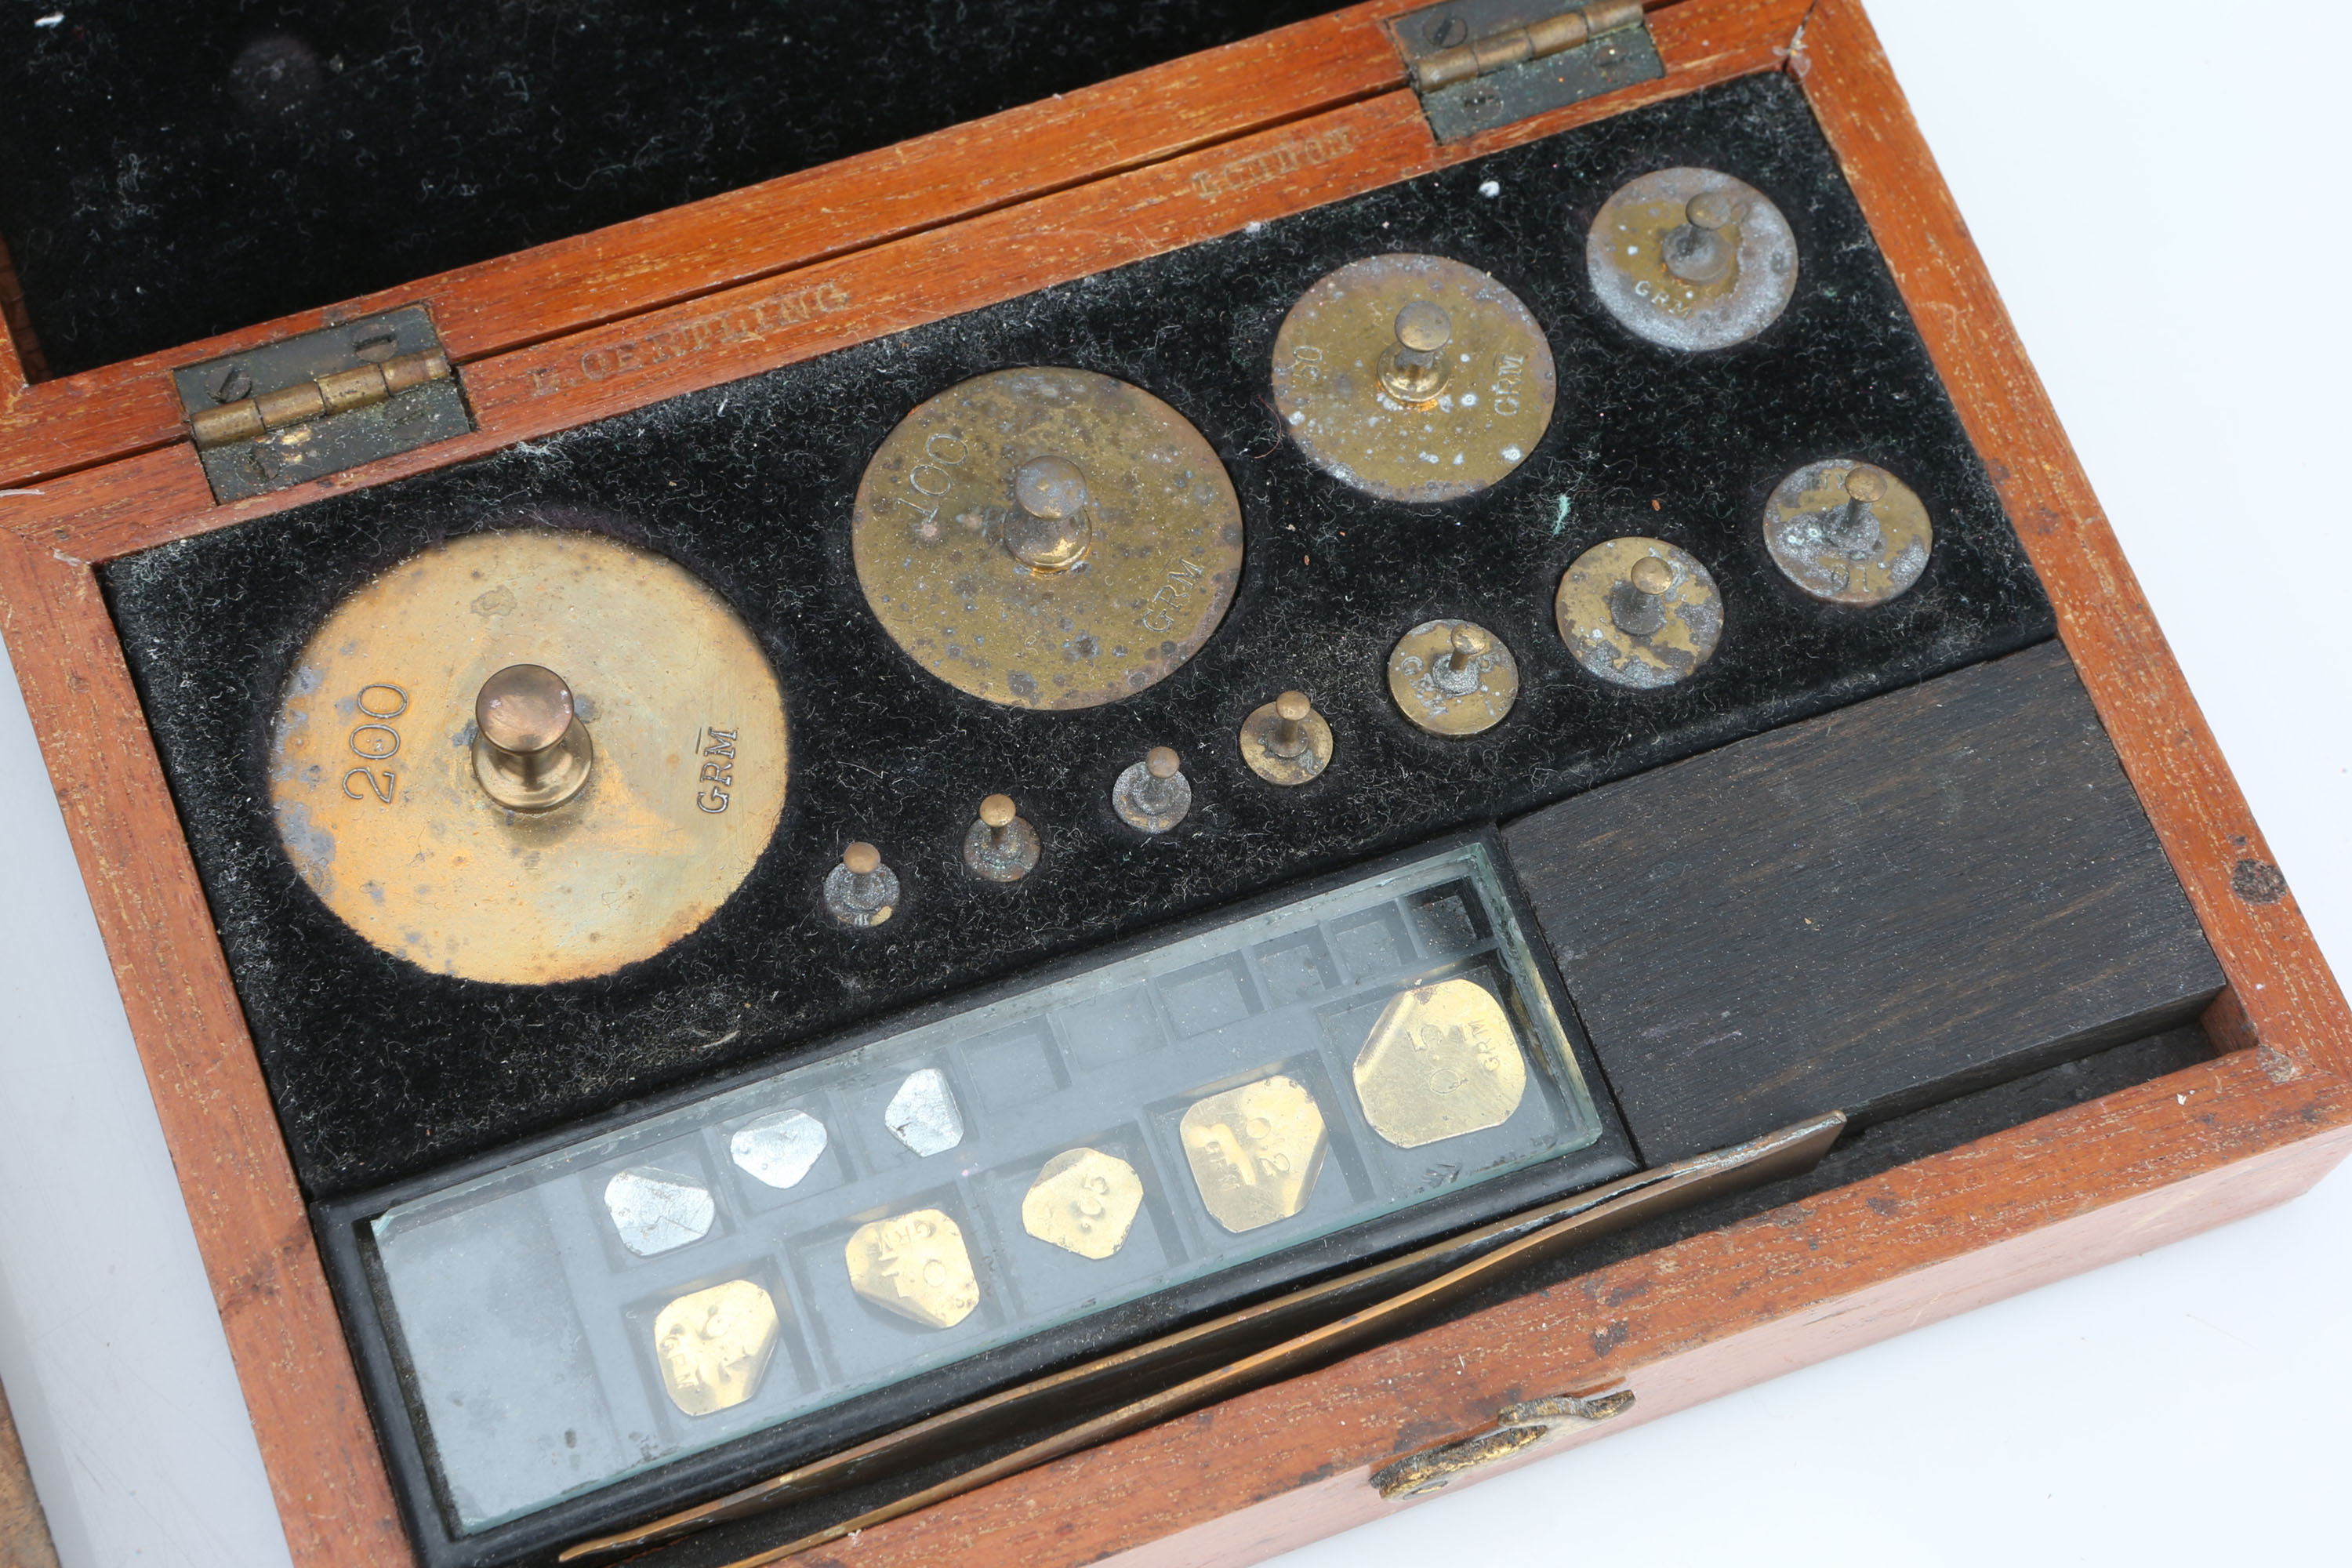 Collection of Hydrometers & Weights - Image 3 of 4